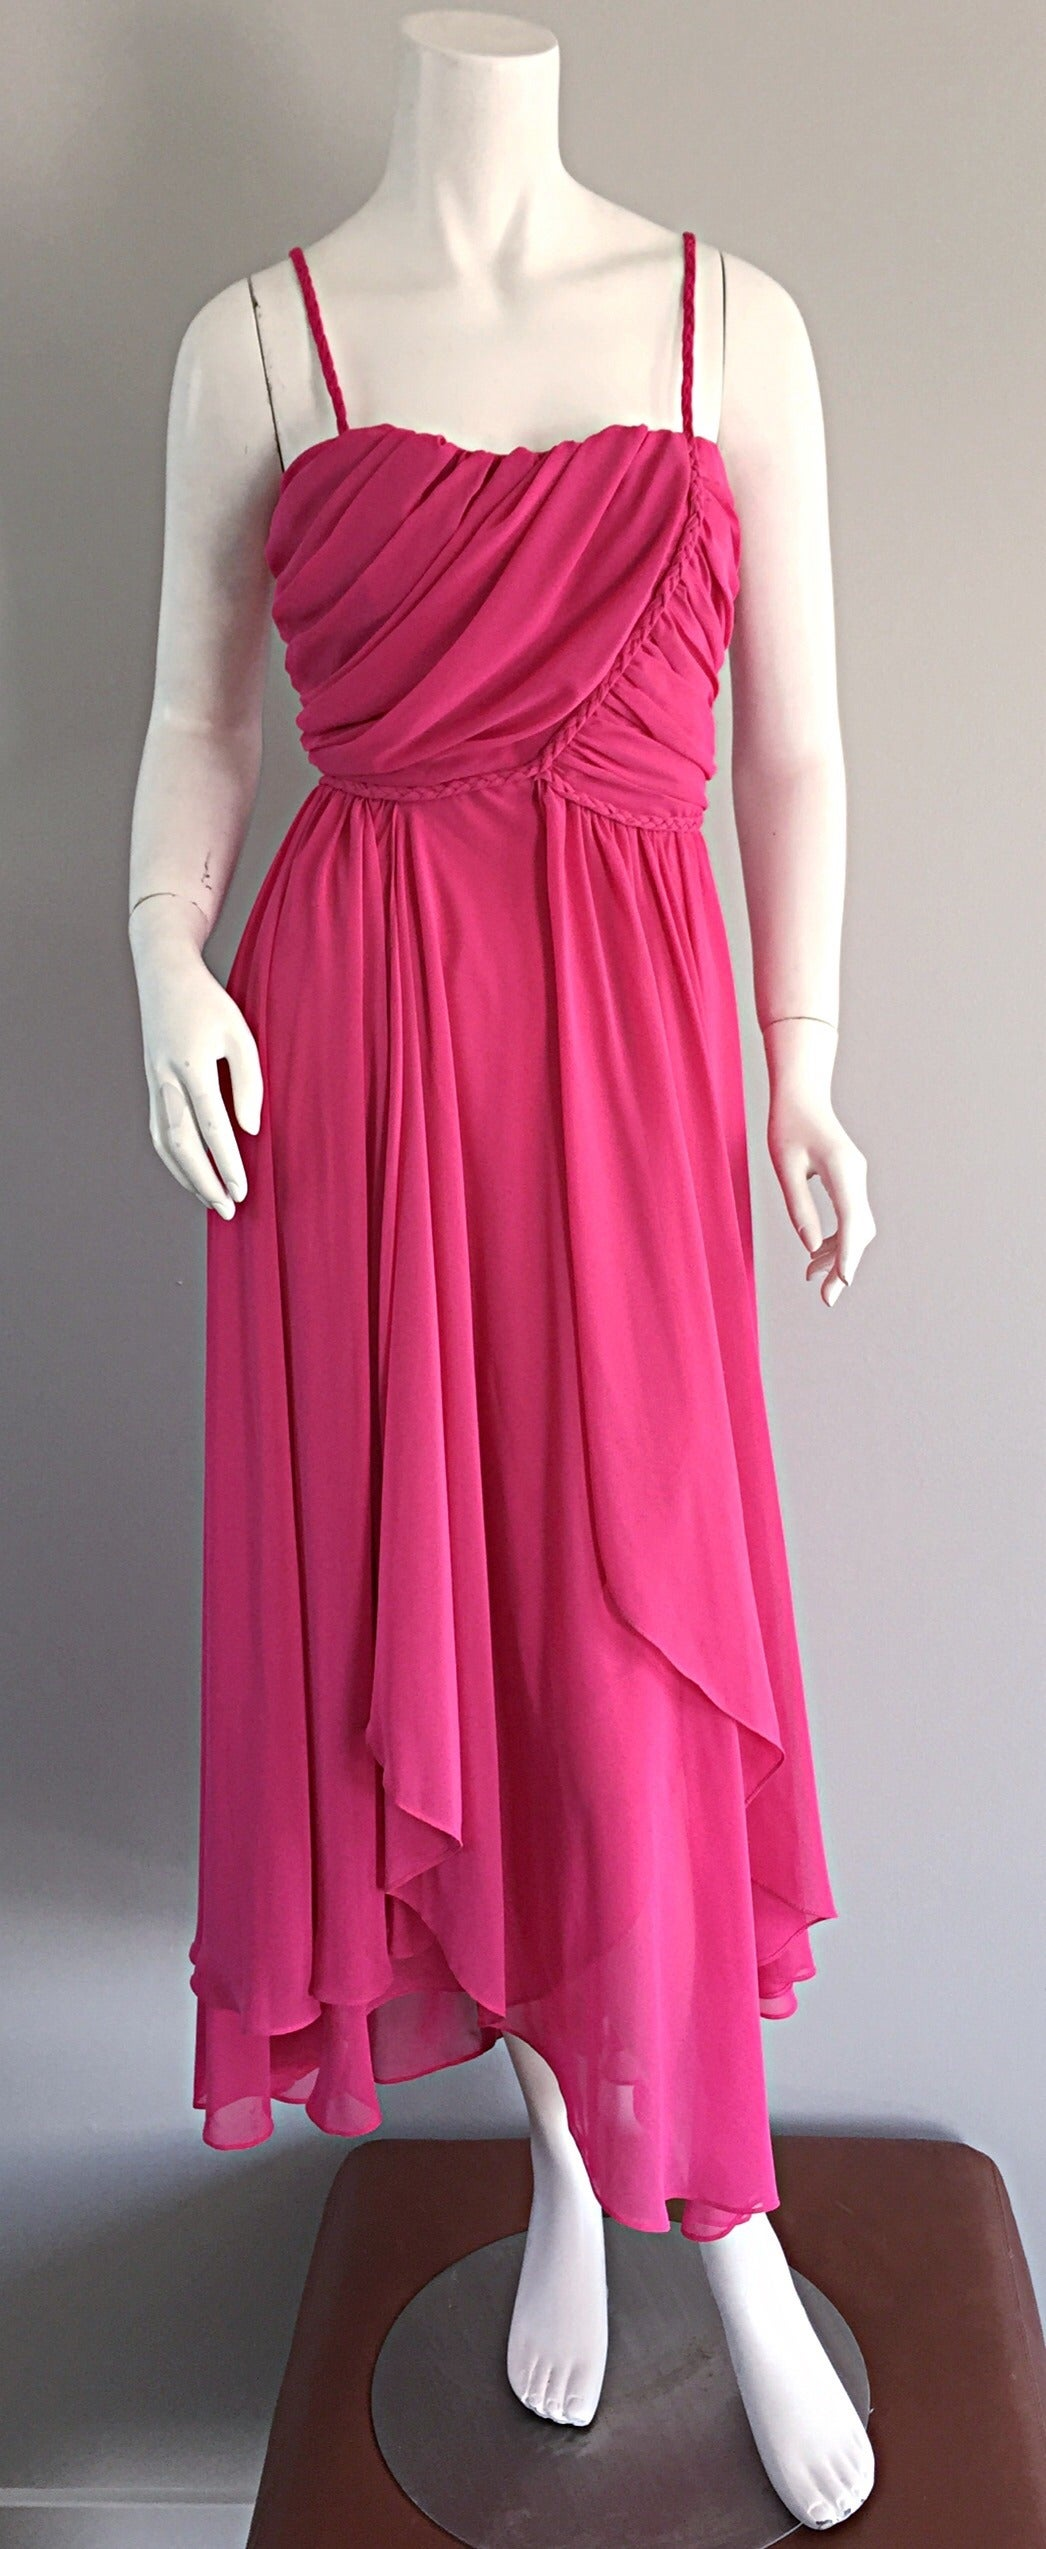 1970s Joy Stevens Hot Pink Vintage Flowy Grecian Disco Dress w/ Braided Details 5